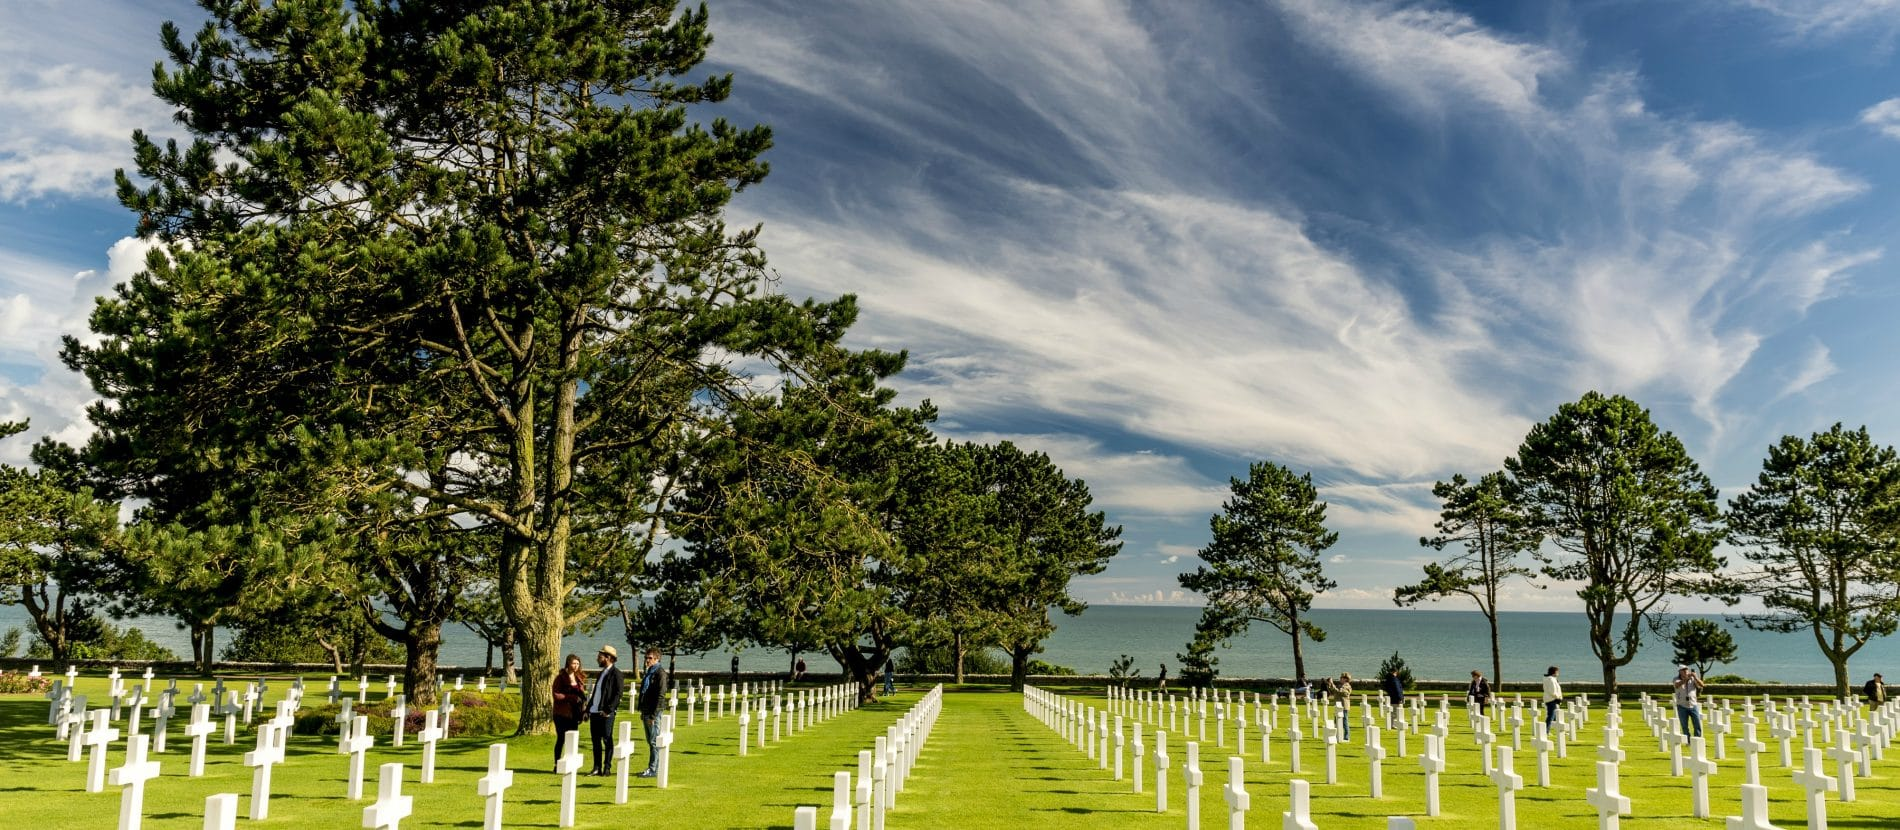 The Normandy American Cemetery and Memorial in Colleville-sur-Mer